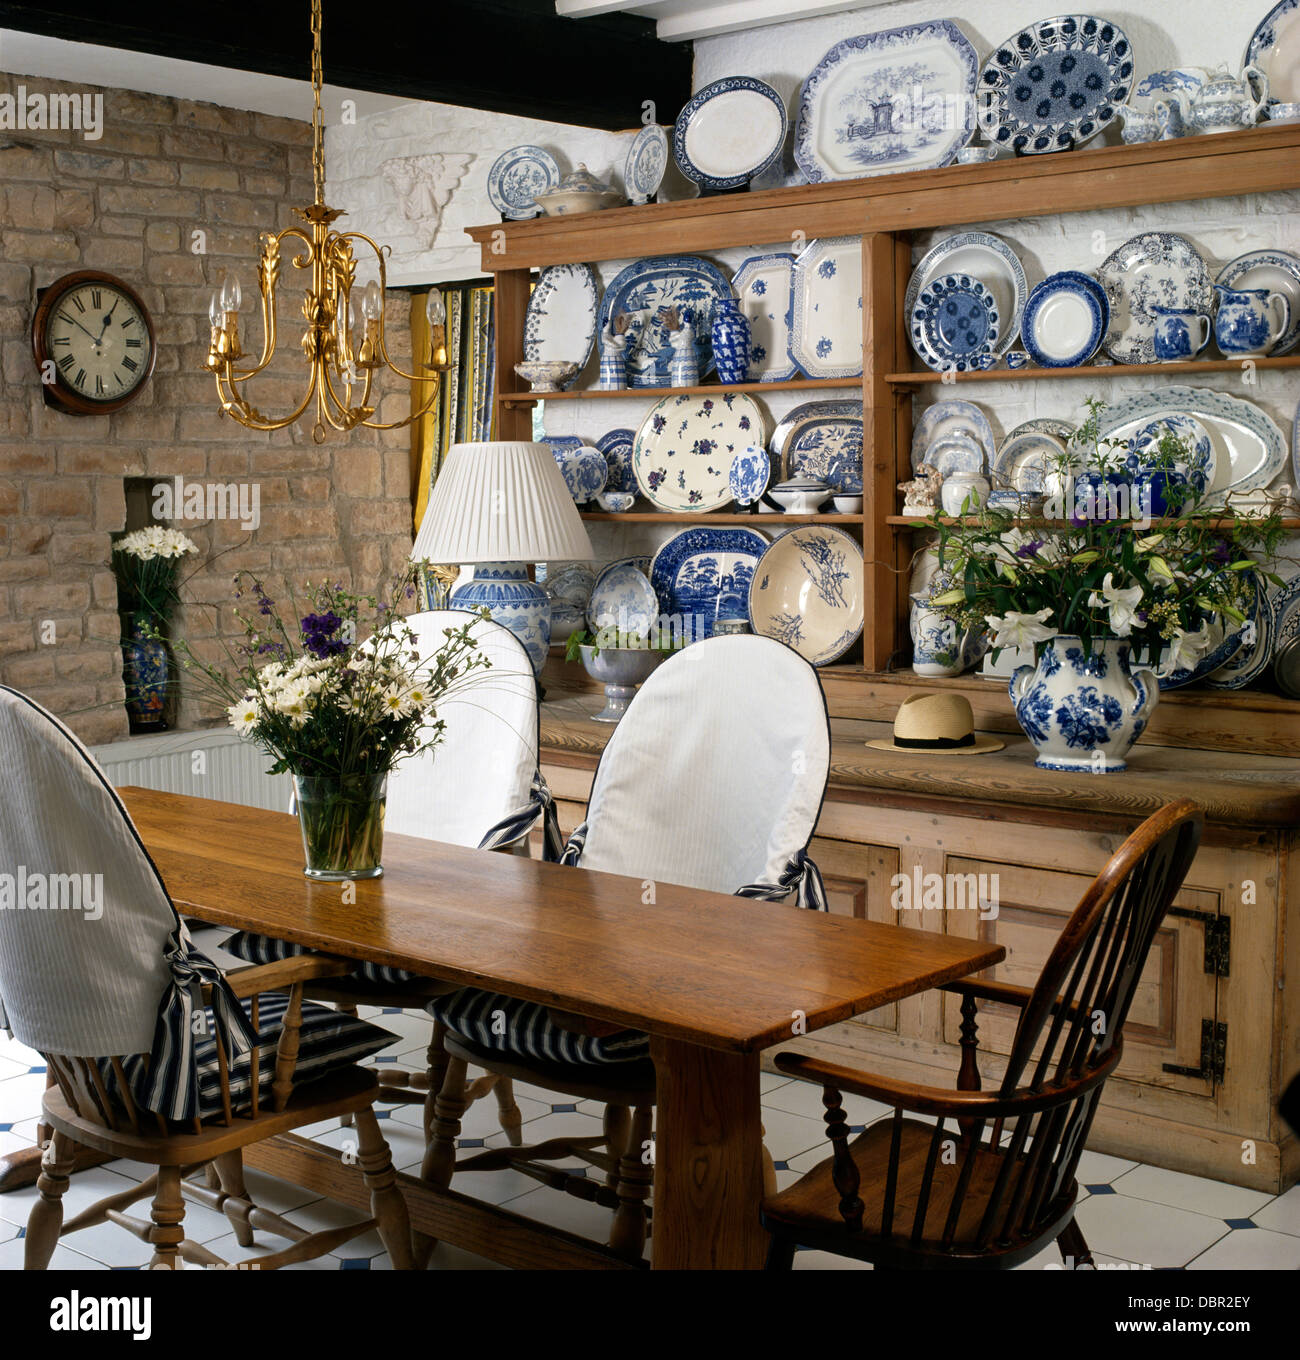 https://c8.alamy.com/comp/DBR2EY/simple-wood-table-and-chairs-with-white-slip-covers-in-cottage-dining-DBR2EY.jpg